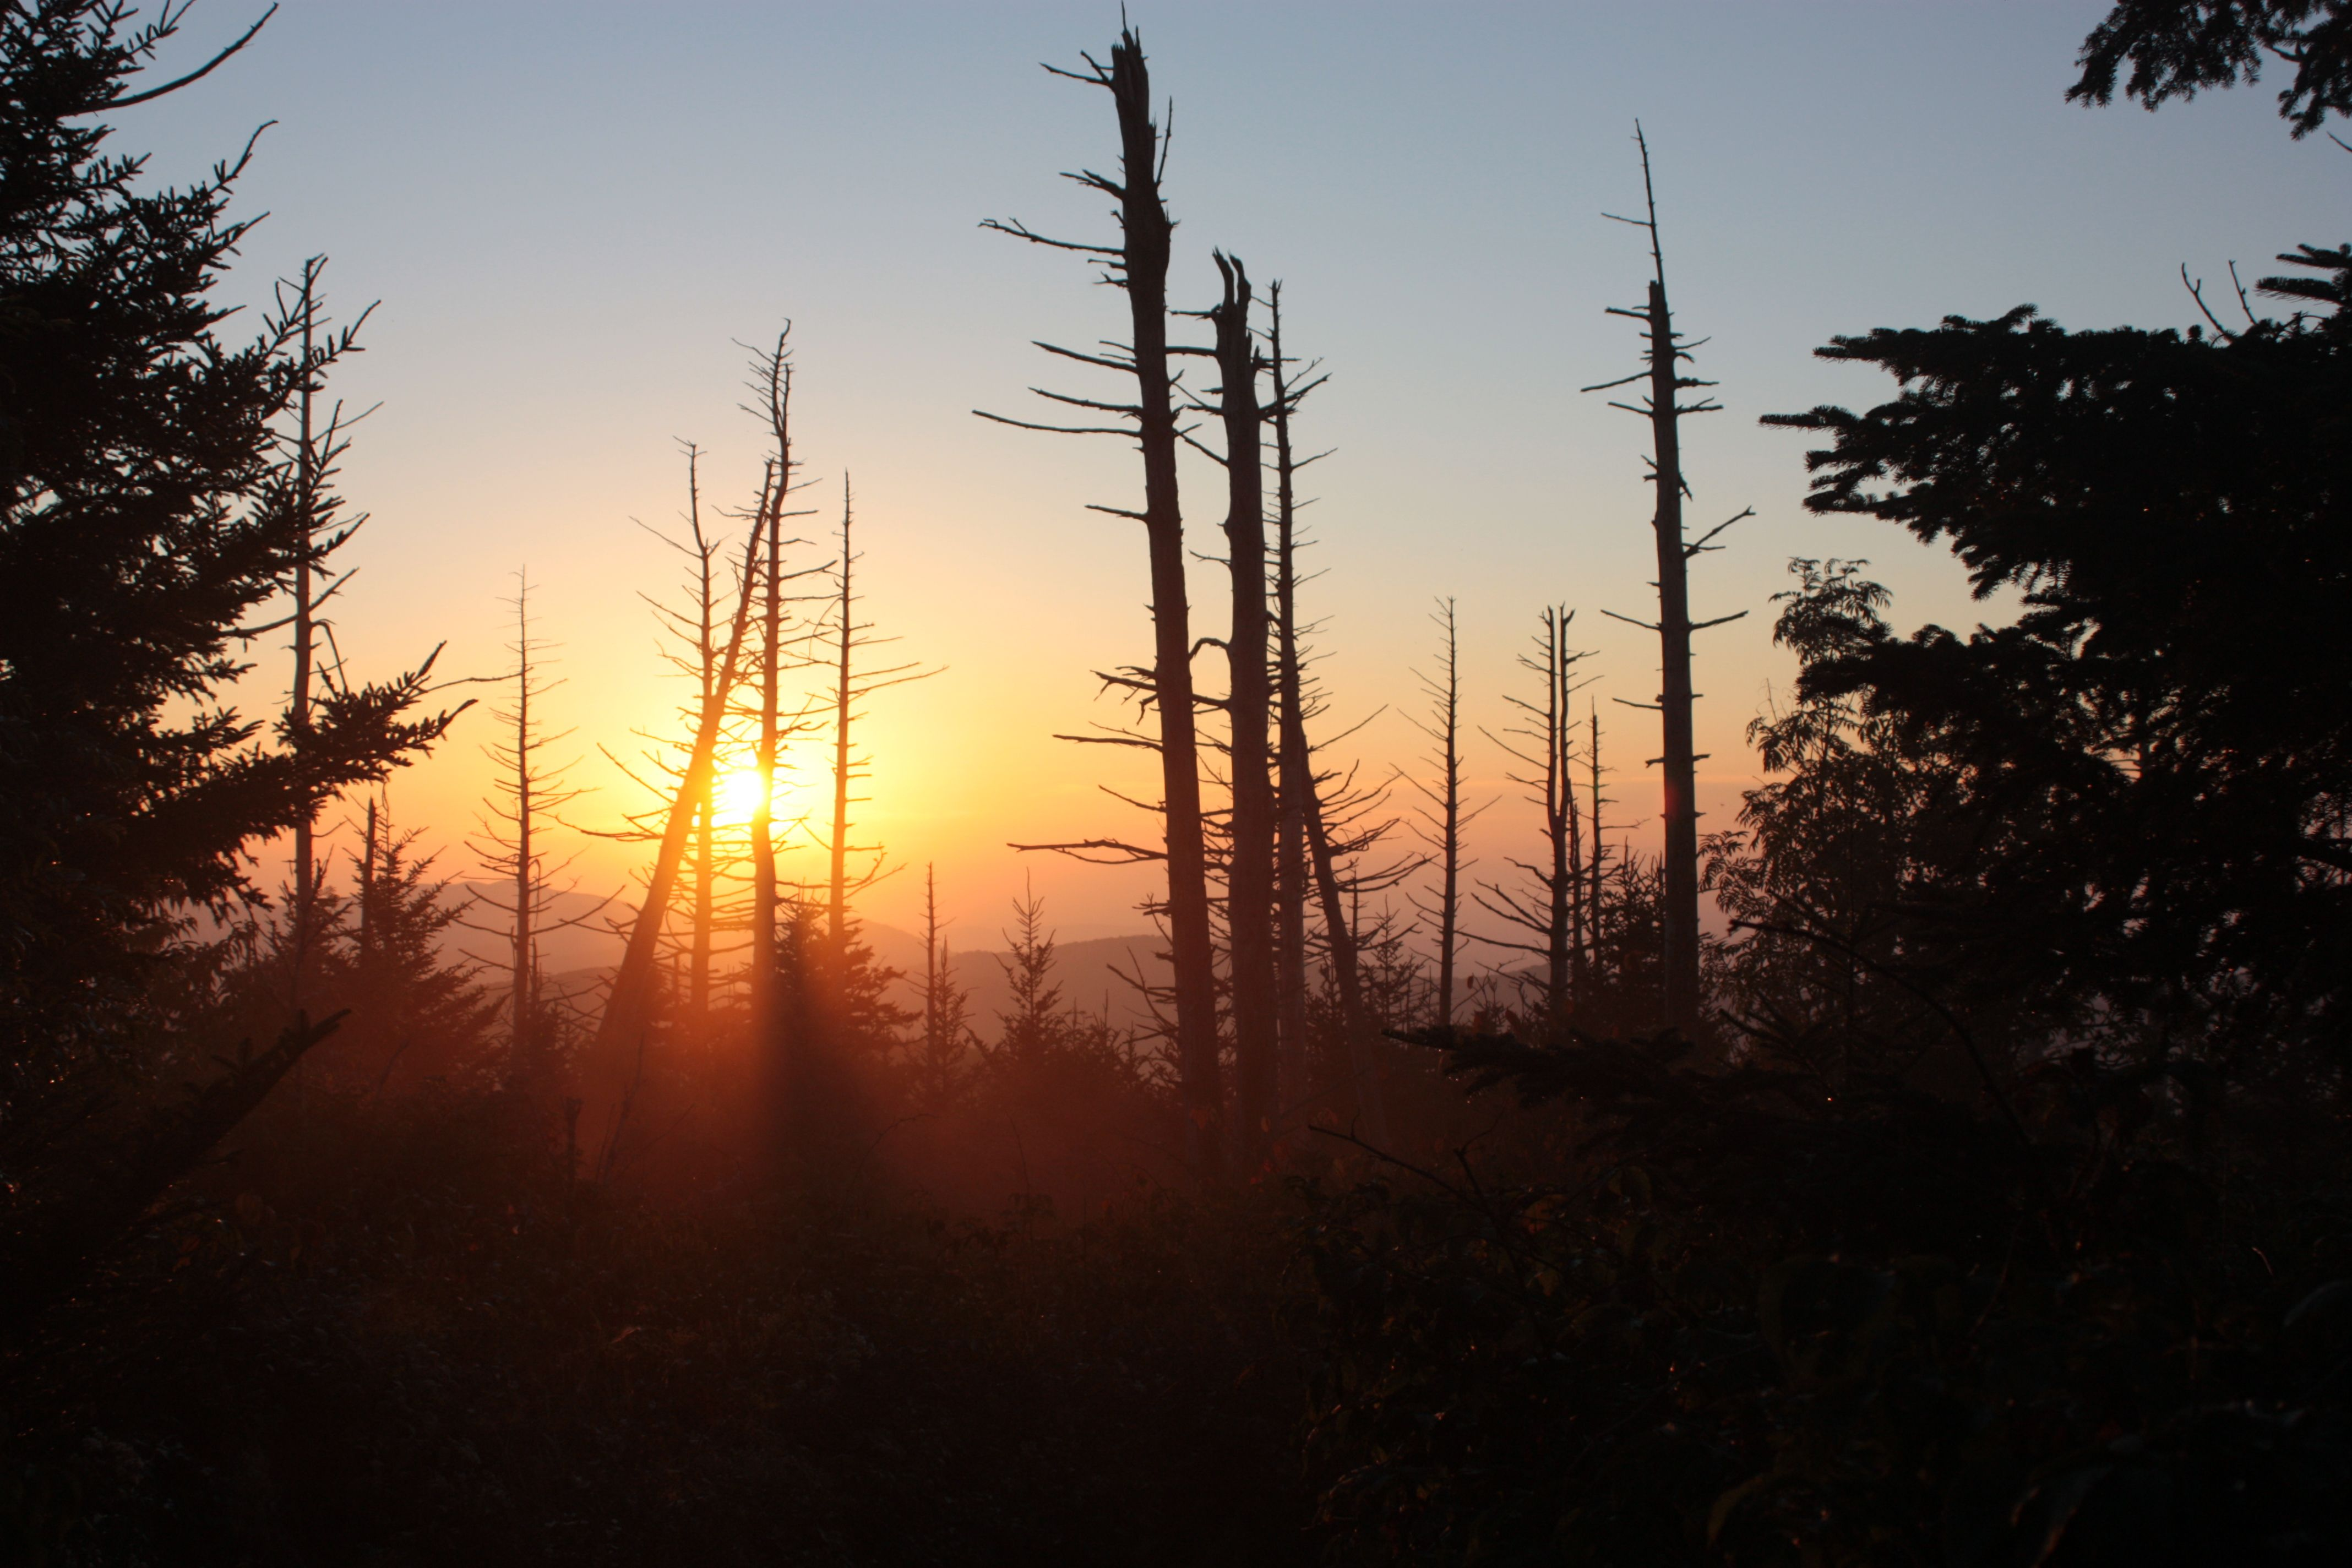 Sunset on the AT, Smoky Mt National Park September 2012 By Juston Cutcher